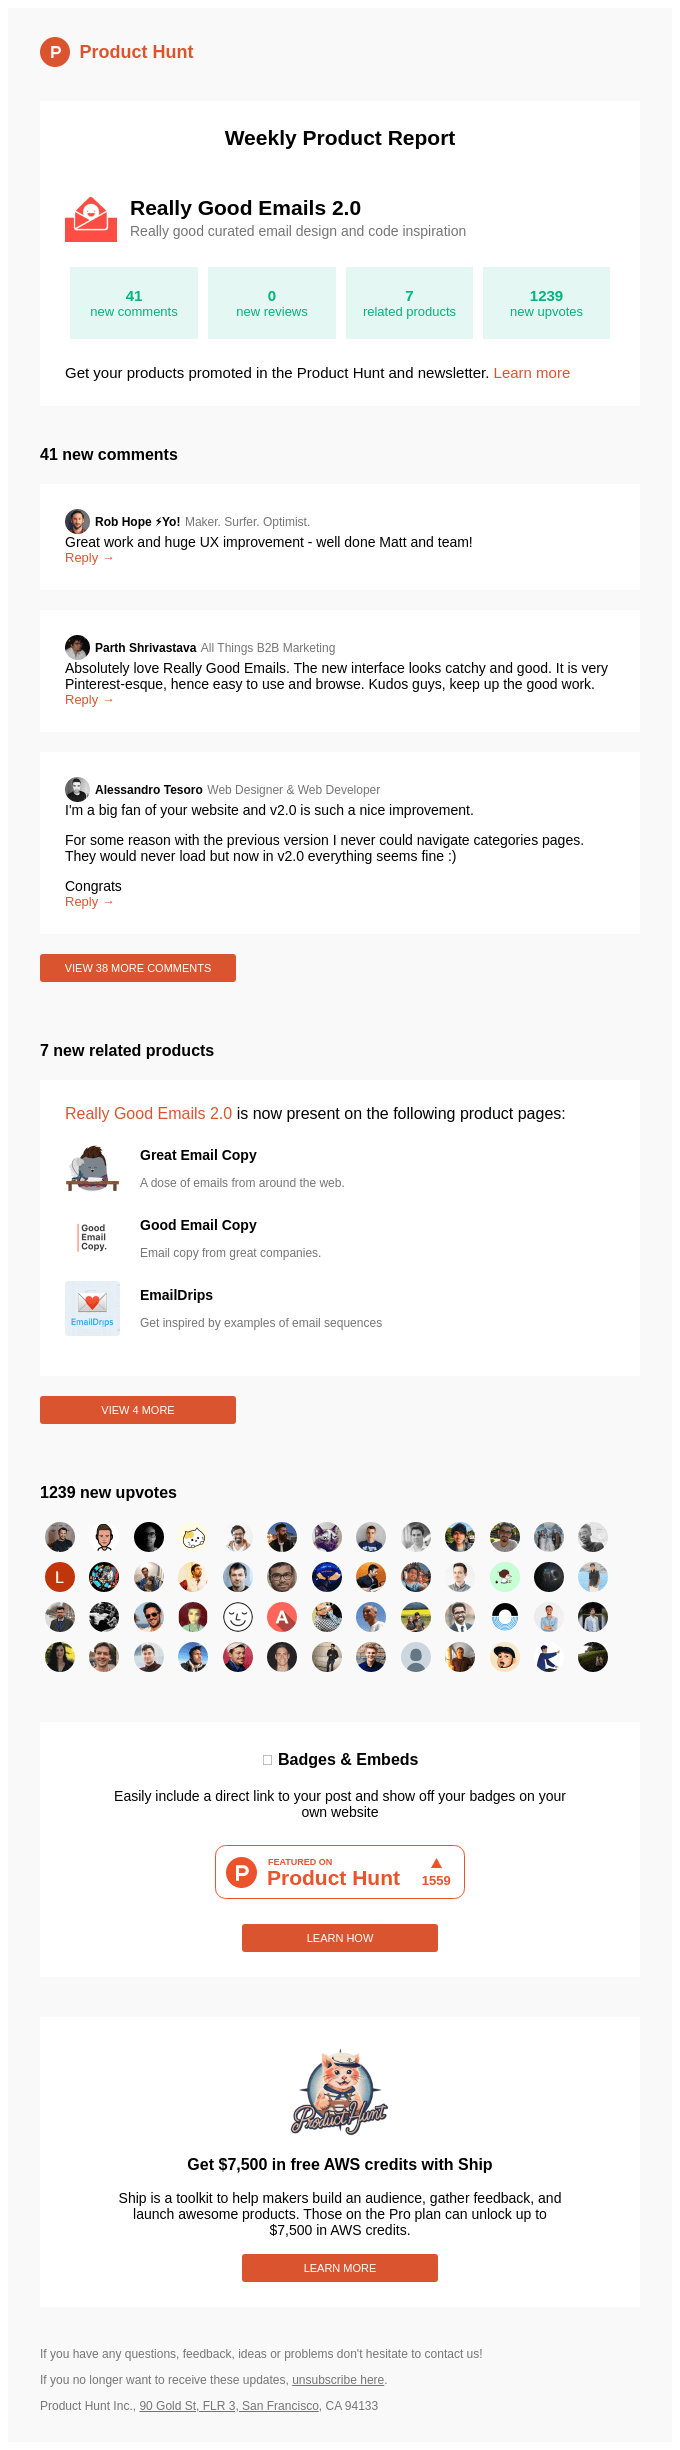 48 new updates for Really Good Emails 2.0